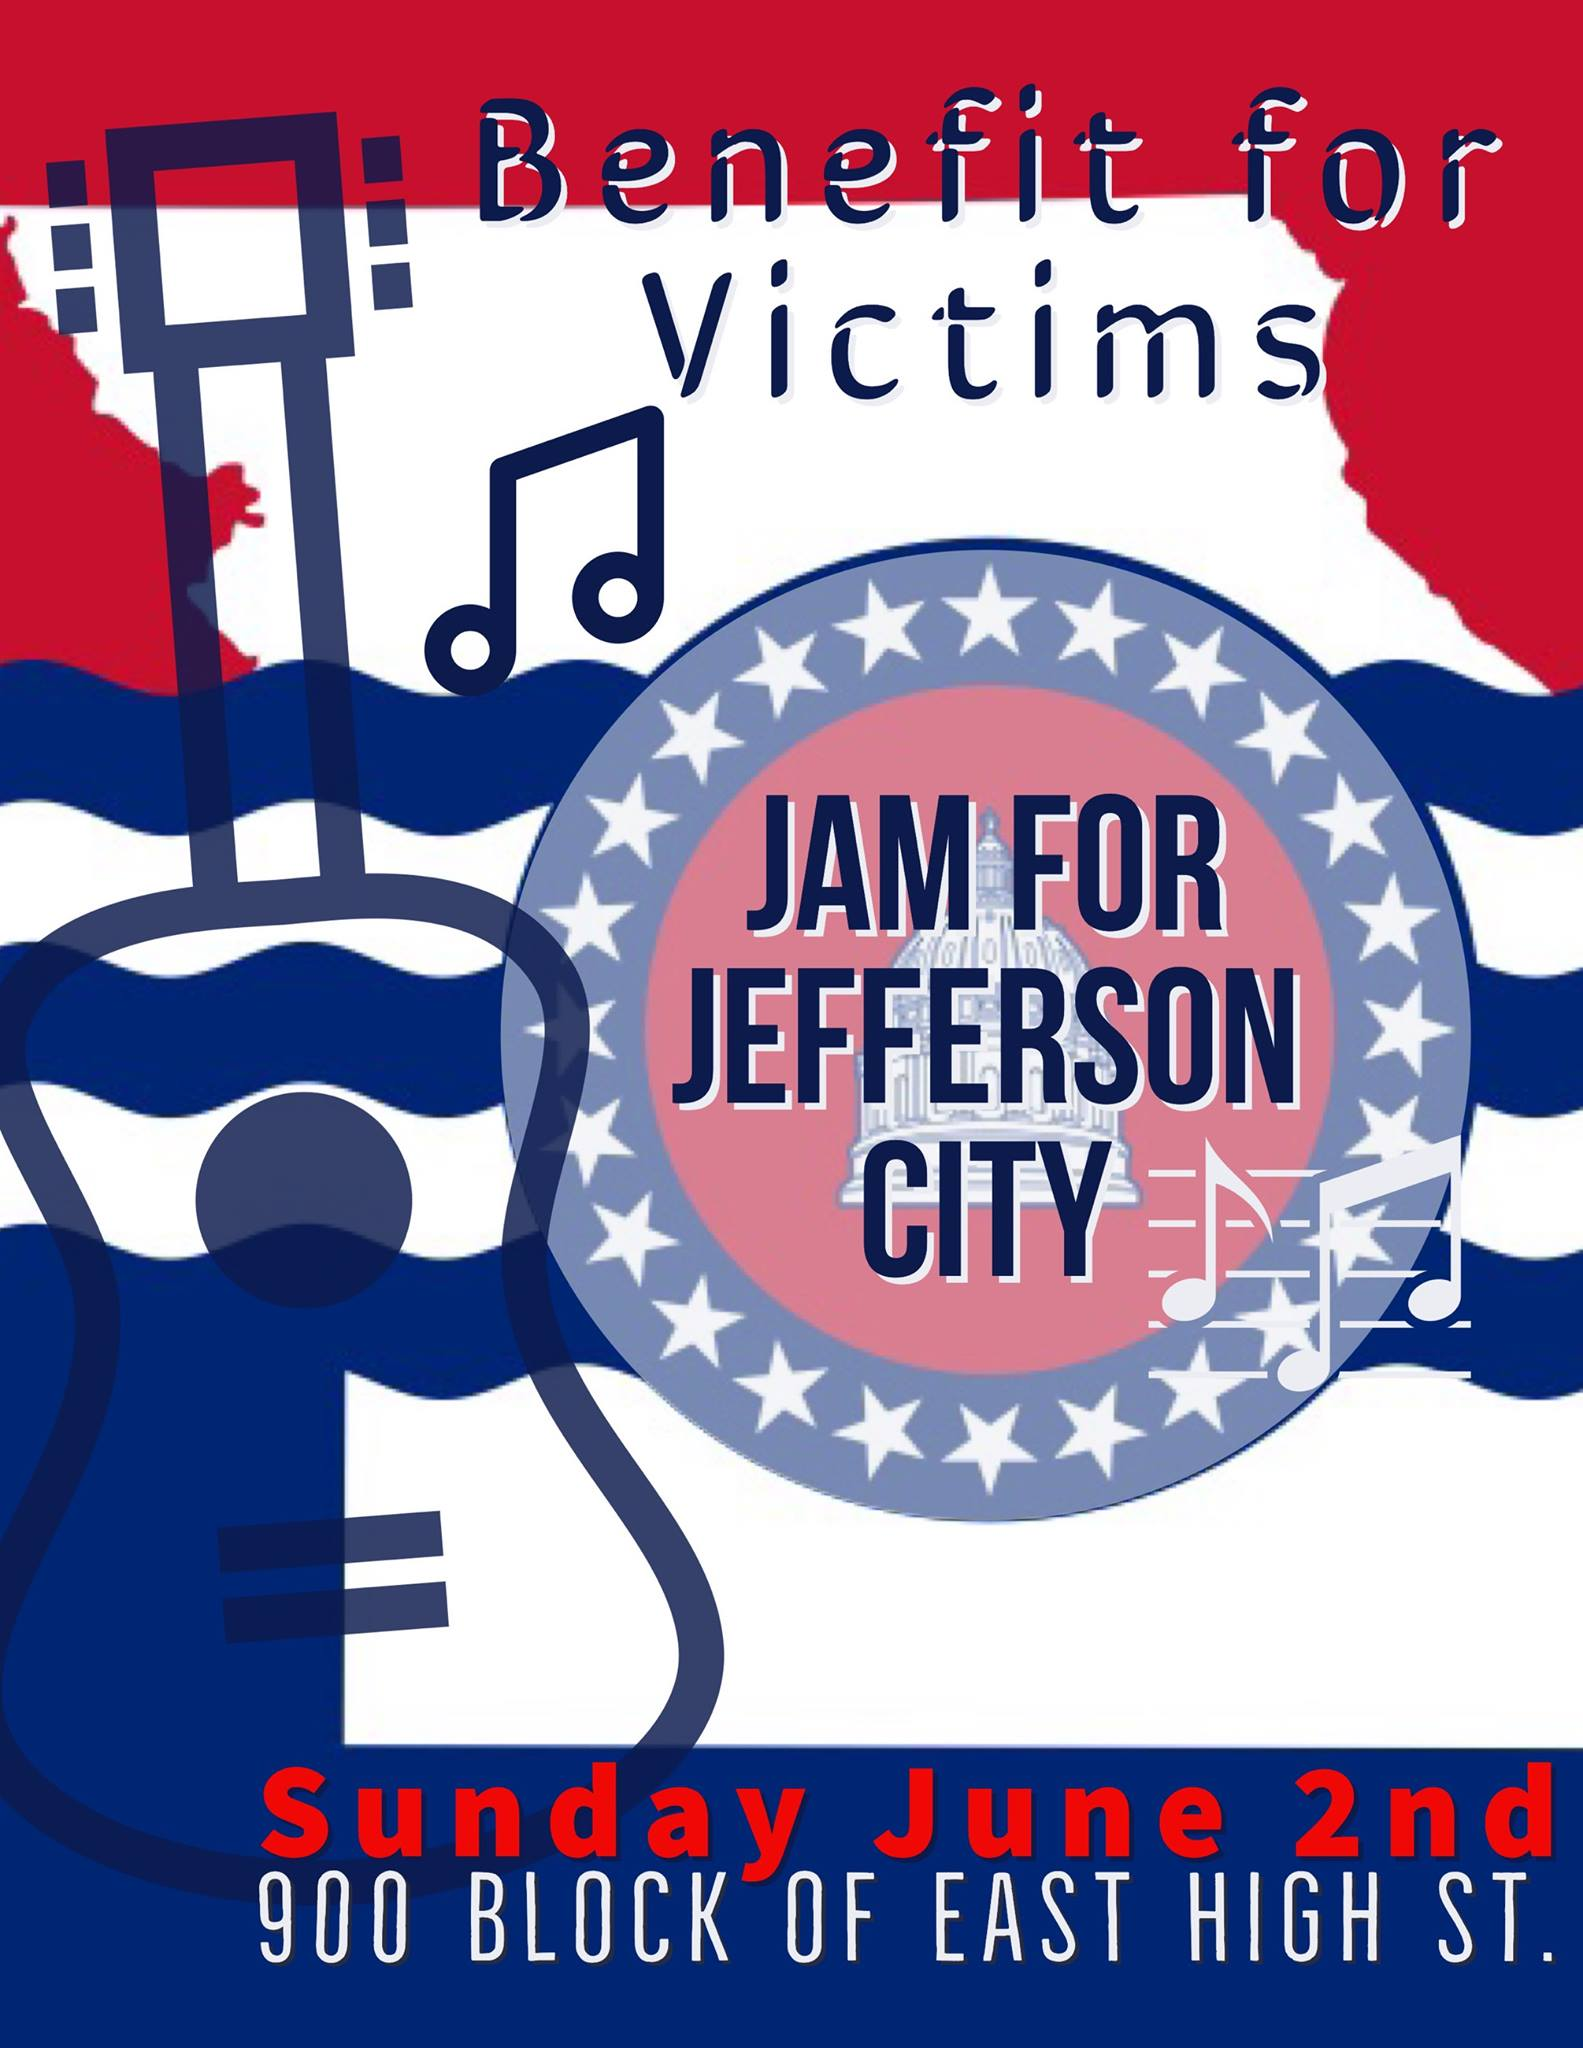 https://www.facebook.com/events/688490778251988/    #JCSTRONG  - Music makes everything better even if for a little while. There is much work to be done in JTown. Next Sunday afternoon, local musicians will gather to bring hope and spread some joy through our universal language. This will be a family friendly event! 900 BLOCK EAST HIGH STREET  Funds raised through this event will be donated to the  United Way of Central Missouri ,  Habitat for Humanity  and  Common Ground Community Building . We are in the planning phase, however our goal is to have representatives from these organizations present to accept donations directly in addition to non perishable items. Stay tuned for more information.  Band lineup TBD - Private message or email The Mission if your band is interested. {livemusic@themissionjc.com}  Our neighbors  JQ's on High  will be open as well!